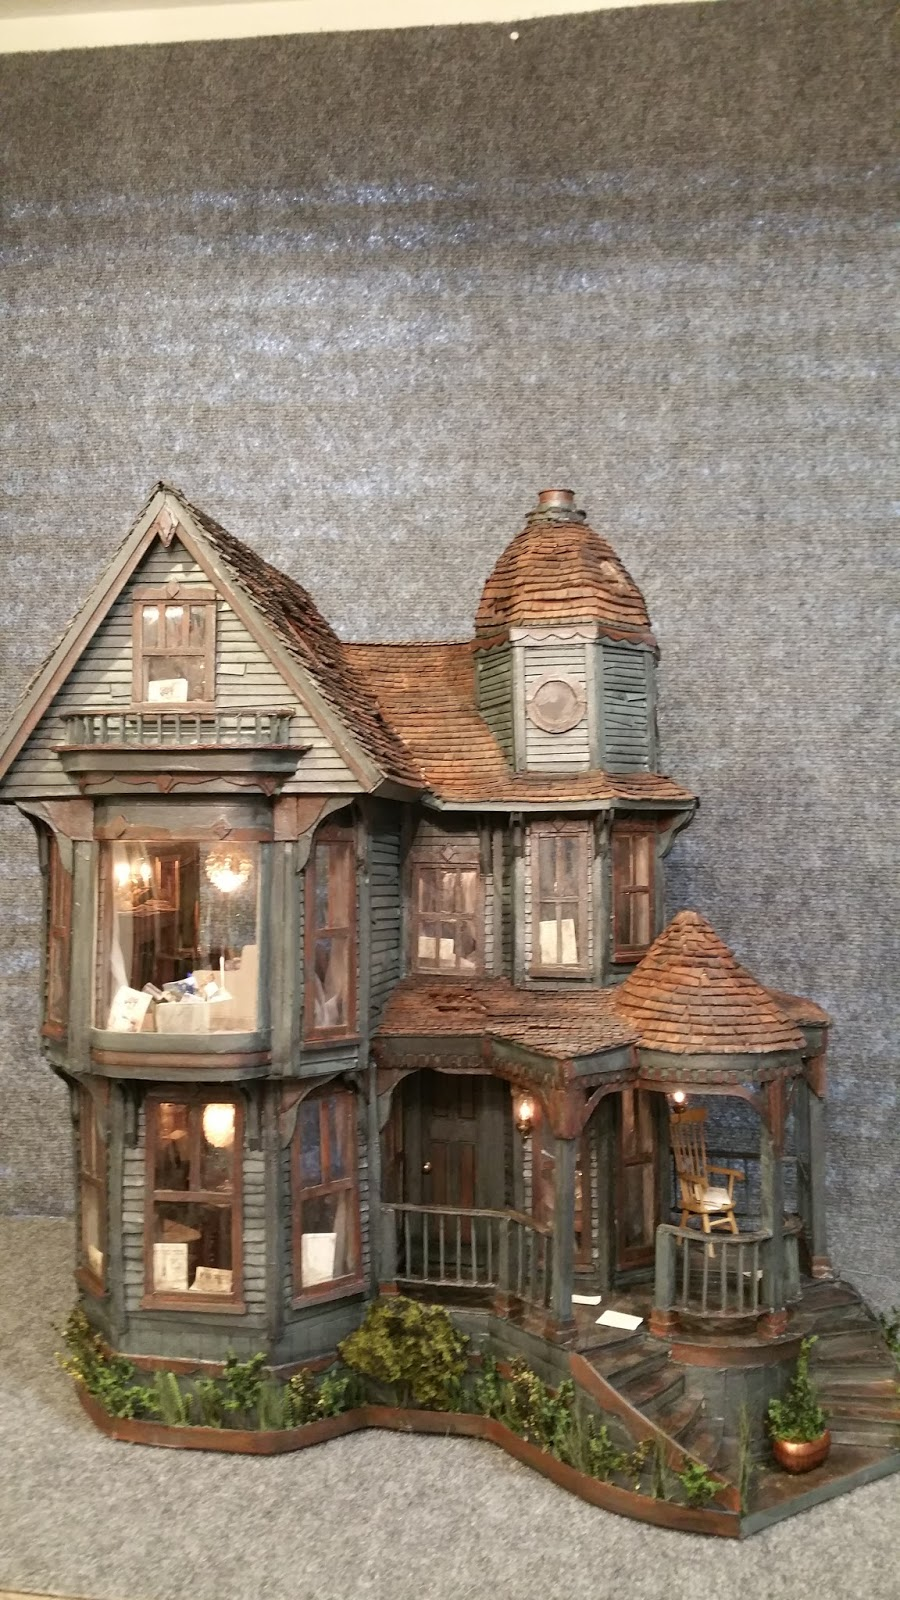 Greggs Miniature Imaginations Haunted Mansion Made Out Of